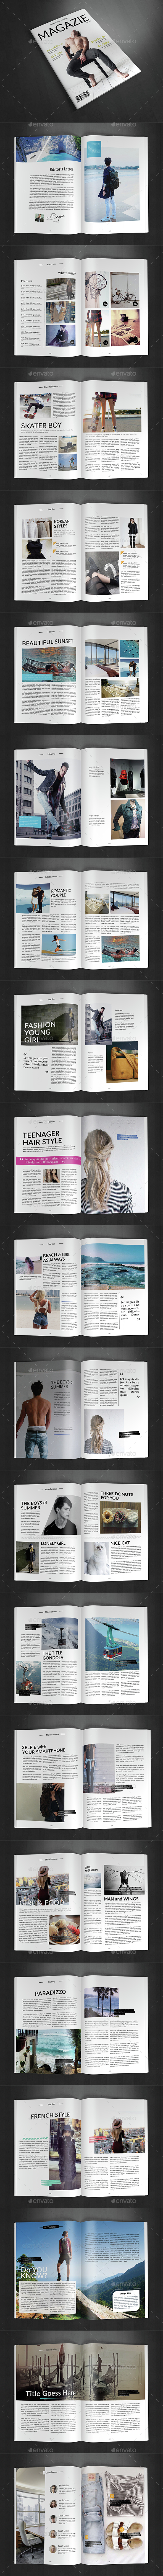 A4 Magazine Template Vol.18 - Magazines Print Templates